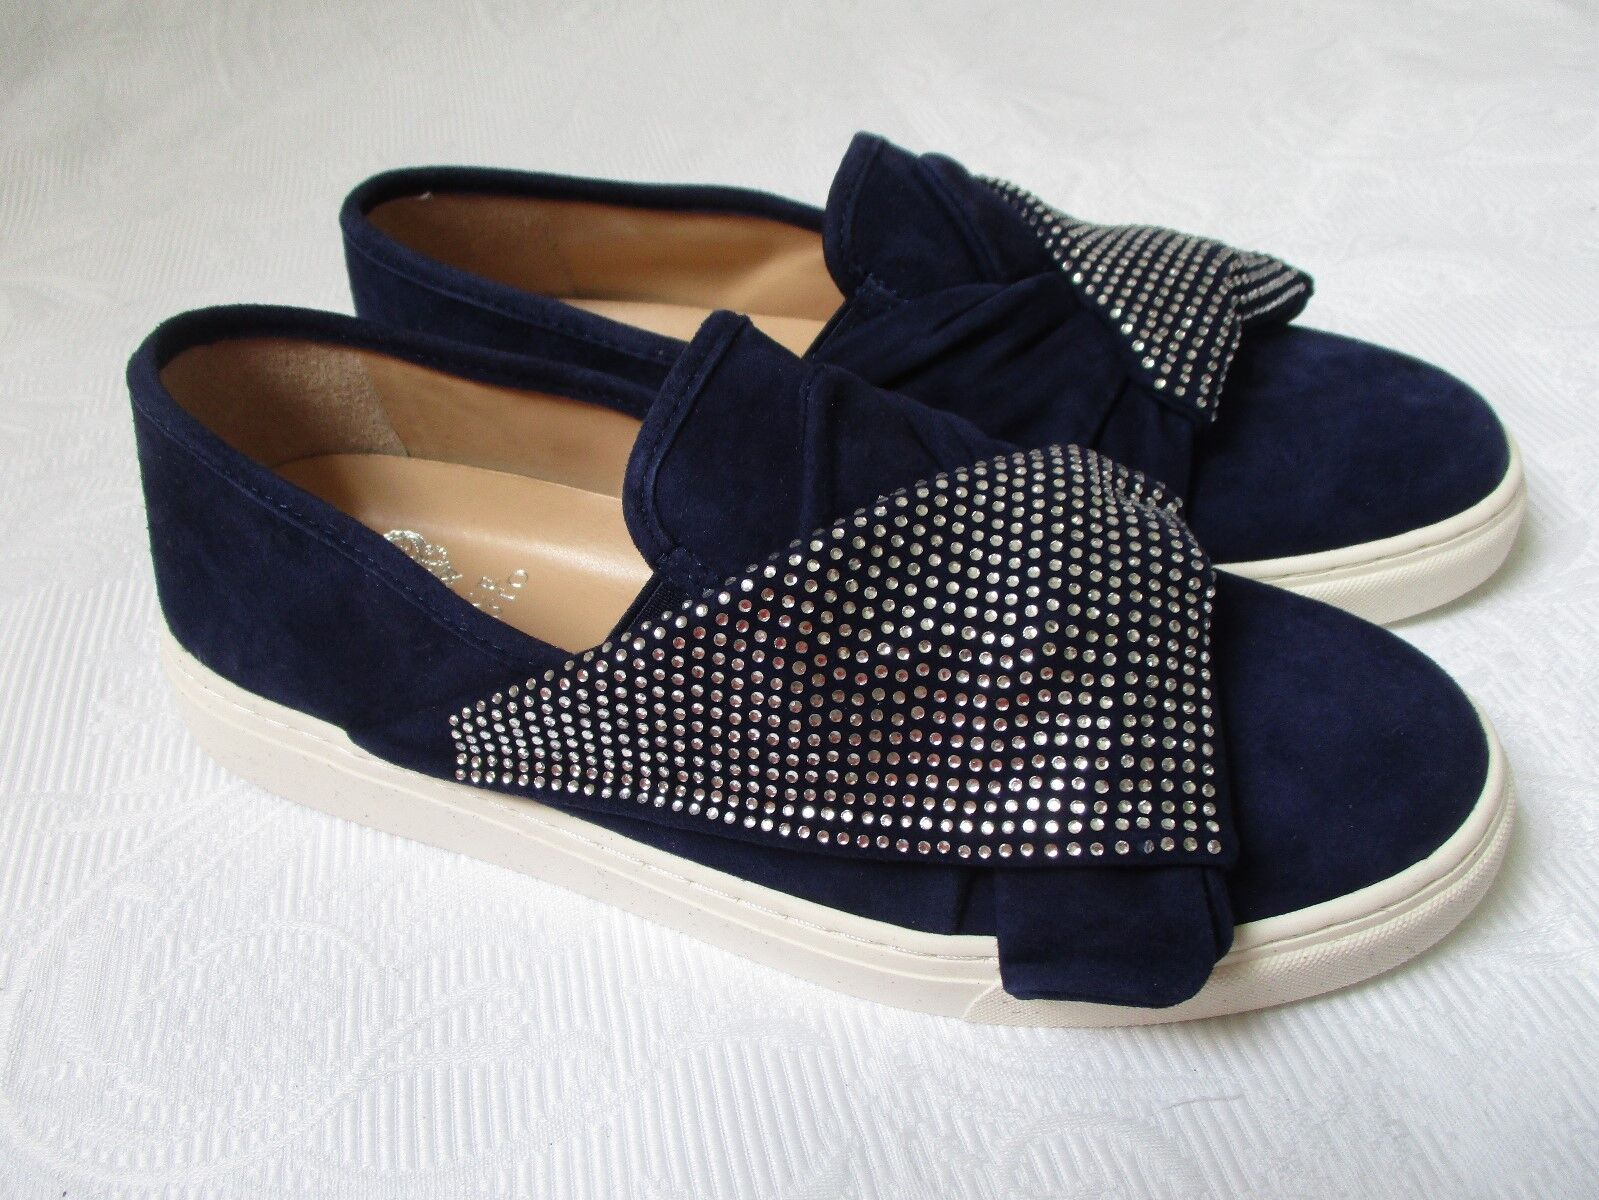 VINCE CAMUTO BARITA bleu SUEDE RHINESTONE baskets Taille 9 1 2 M - NEW